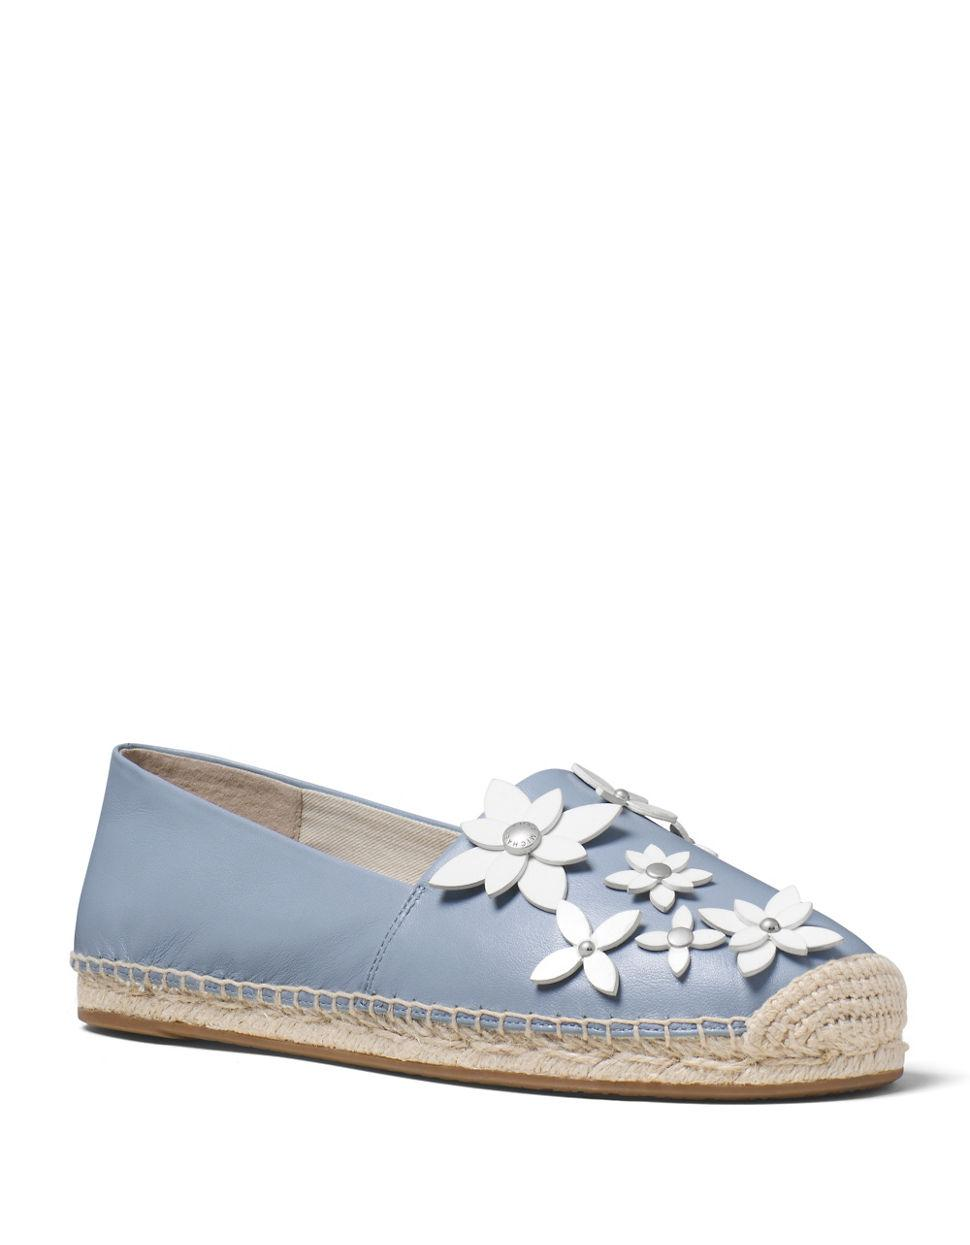 michael michael kors lola embellished leather espadrilles in blue lyst. Black Bedroom Furniture Sets. Home Design Ideas